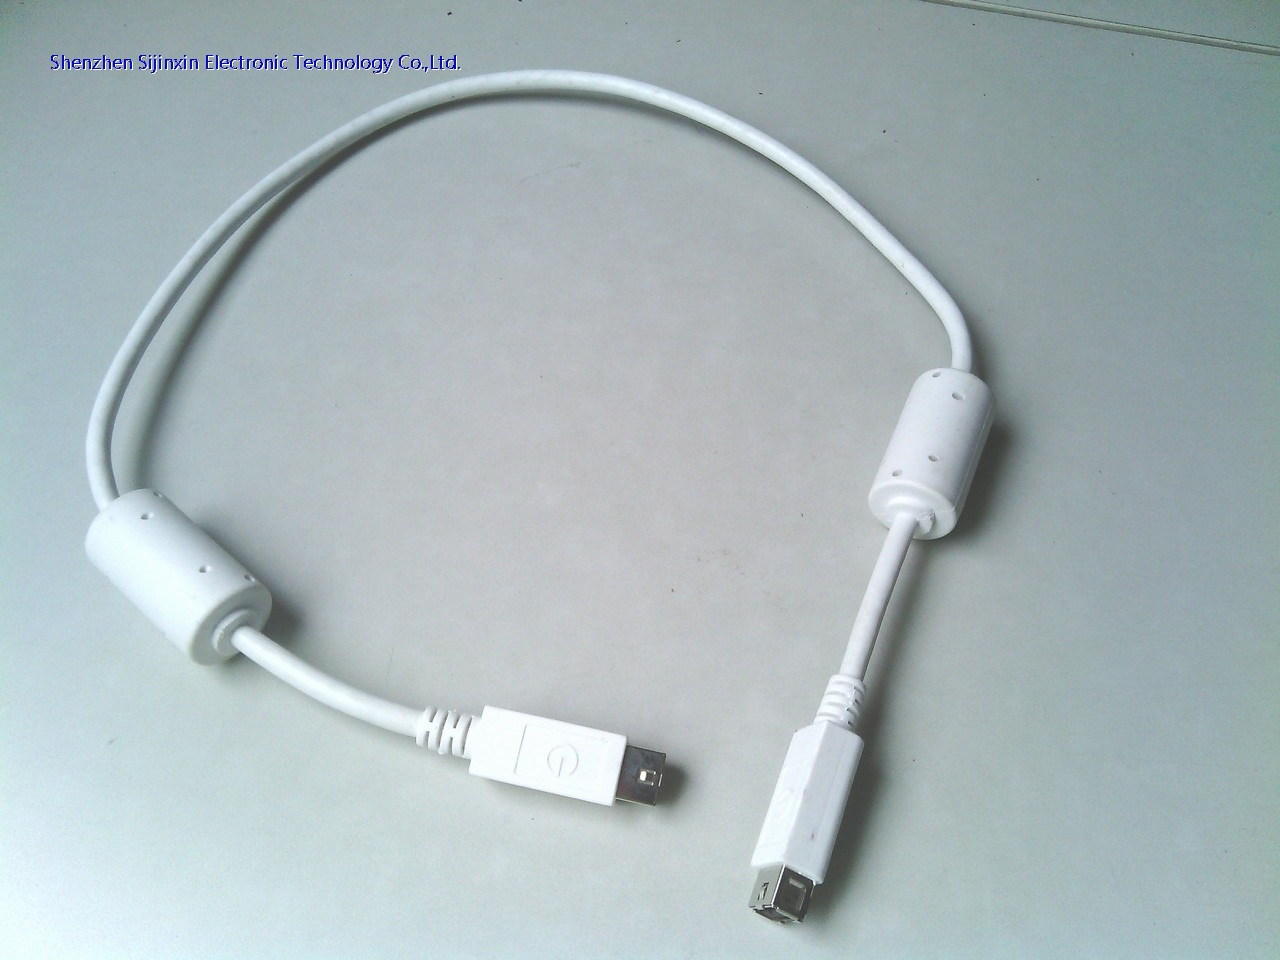 IEEE1394 9P to 9P Firewire cable